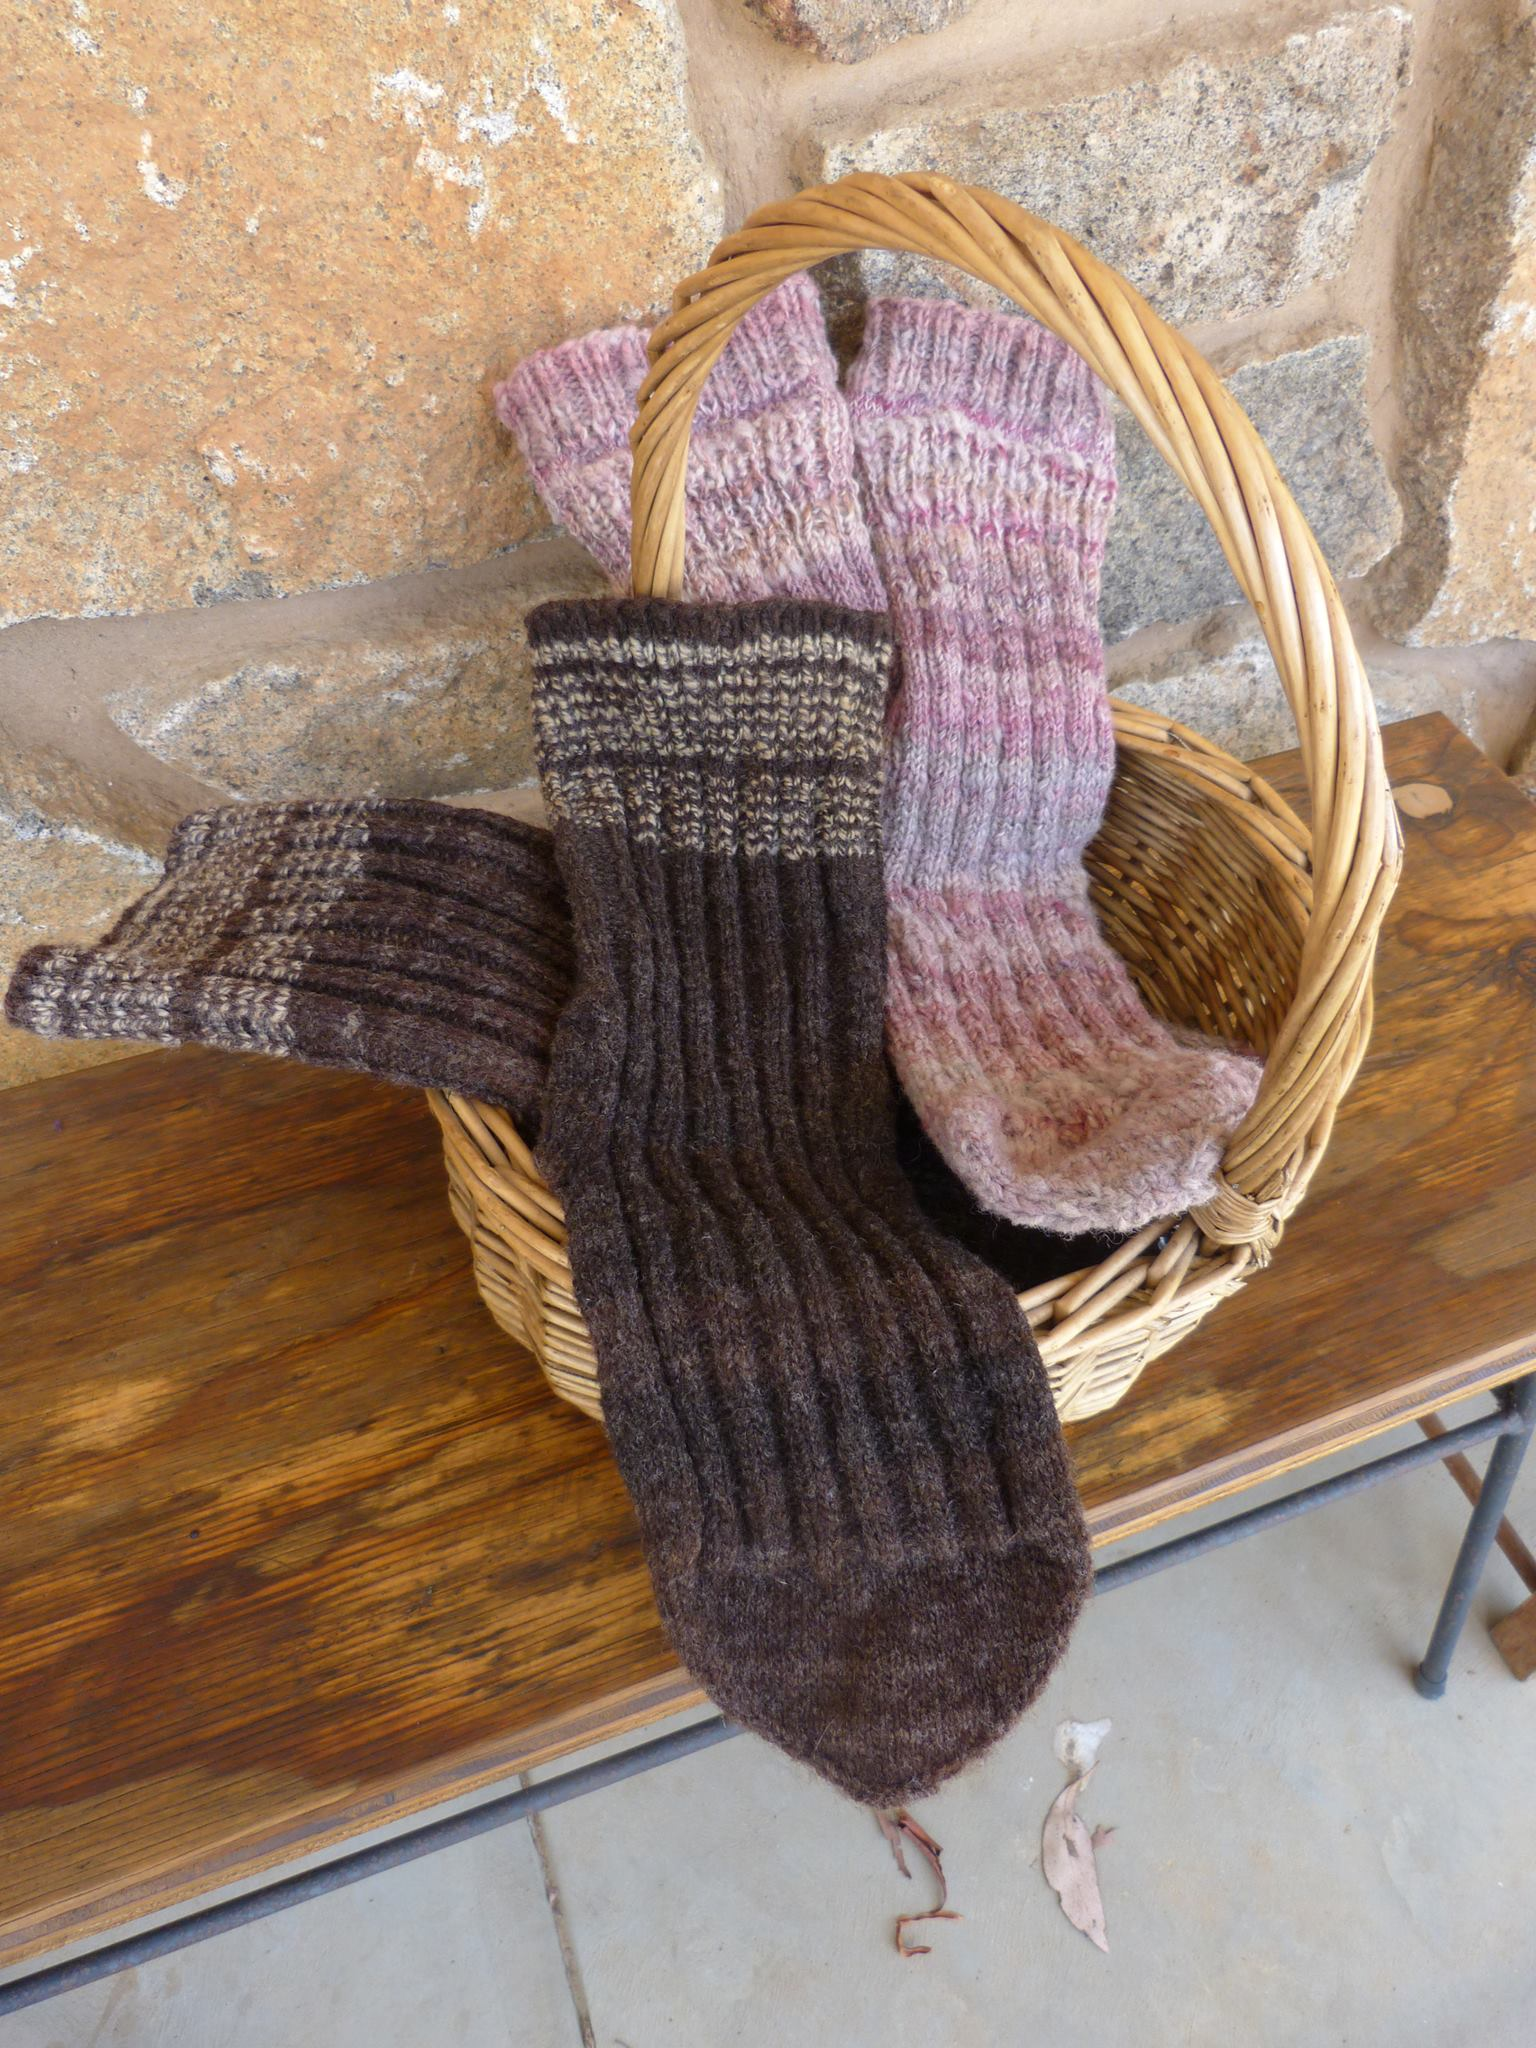 Beautiful Shropshire socks knitted by the shepherdess. Perfect fibre for springy sturdiness. Blended with other fibre to wearer's preference.